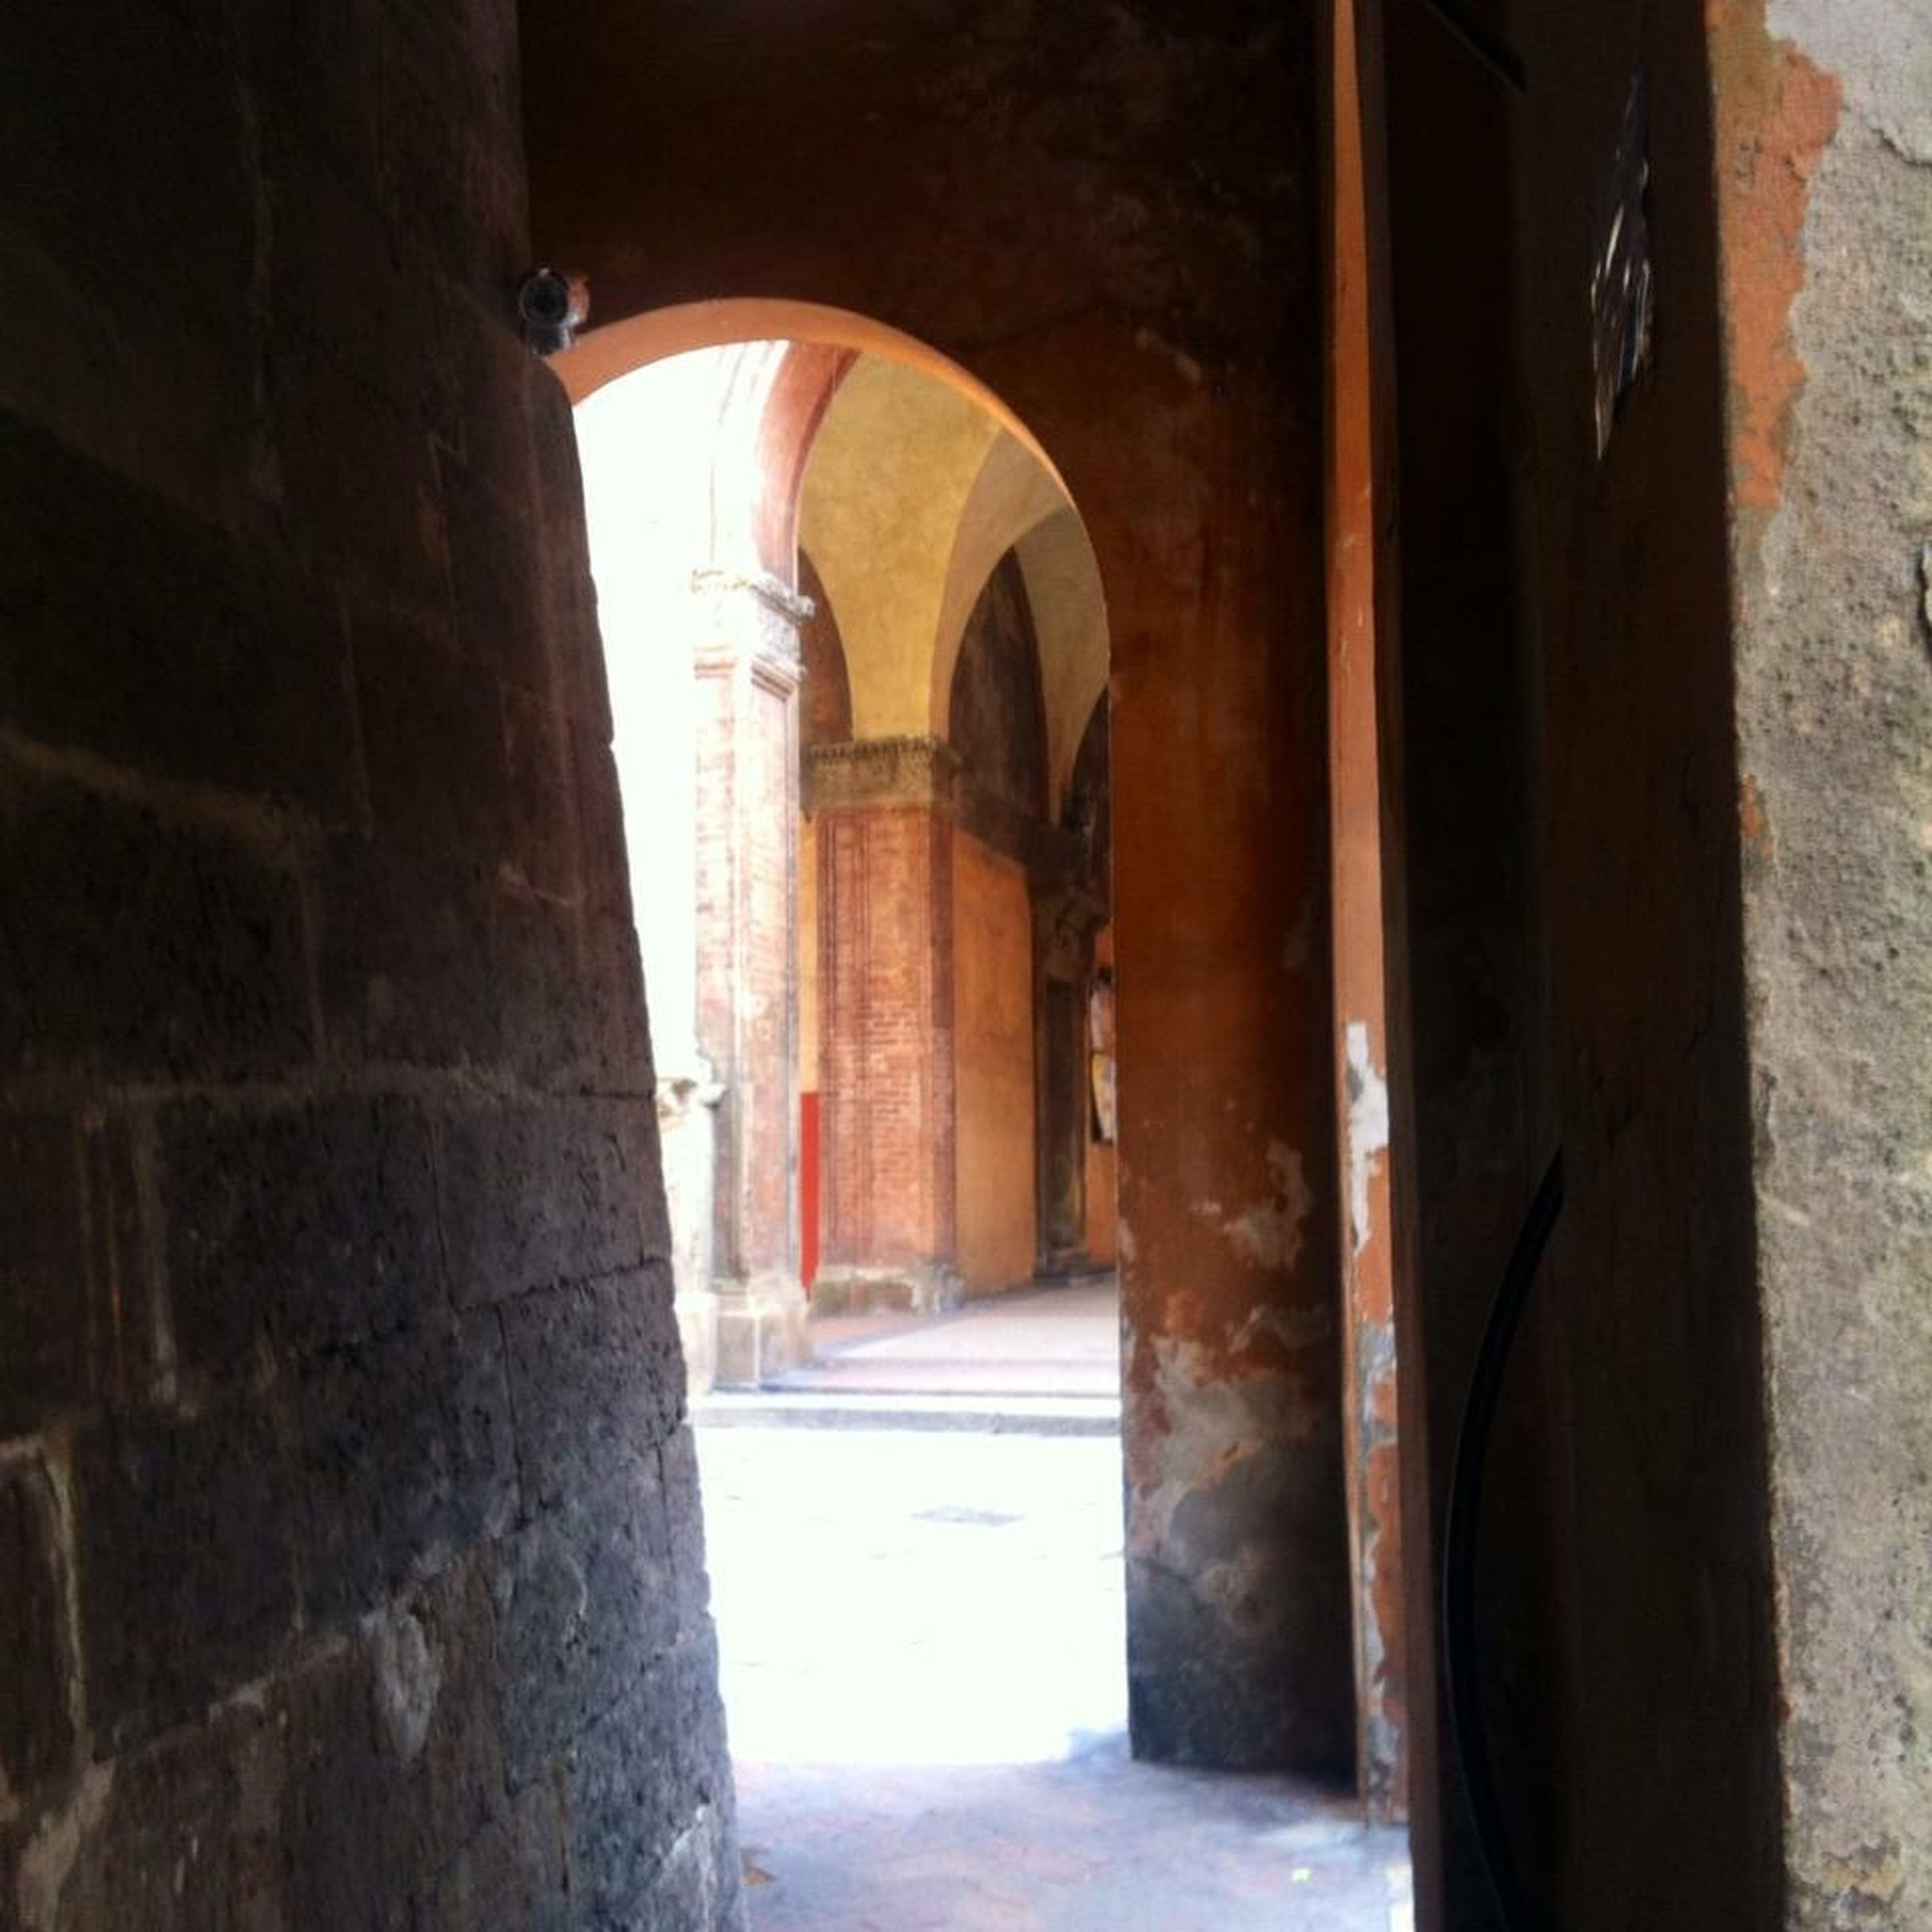 architecture, built structure, arch, building exterior, the way forward, archway, old, indoors, building, narrow, history, entrance, door, corridor, wall - building feature, alley, day, sunlight, doorway, stone wall